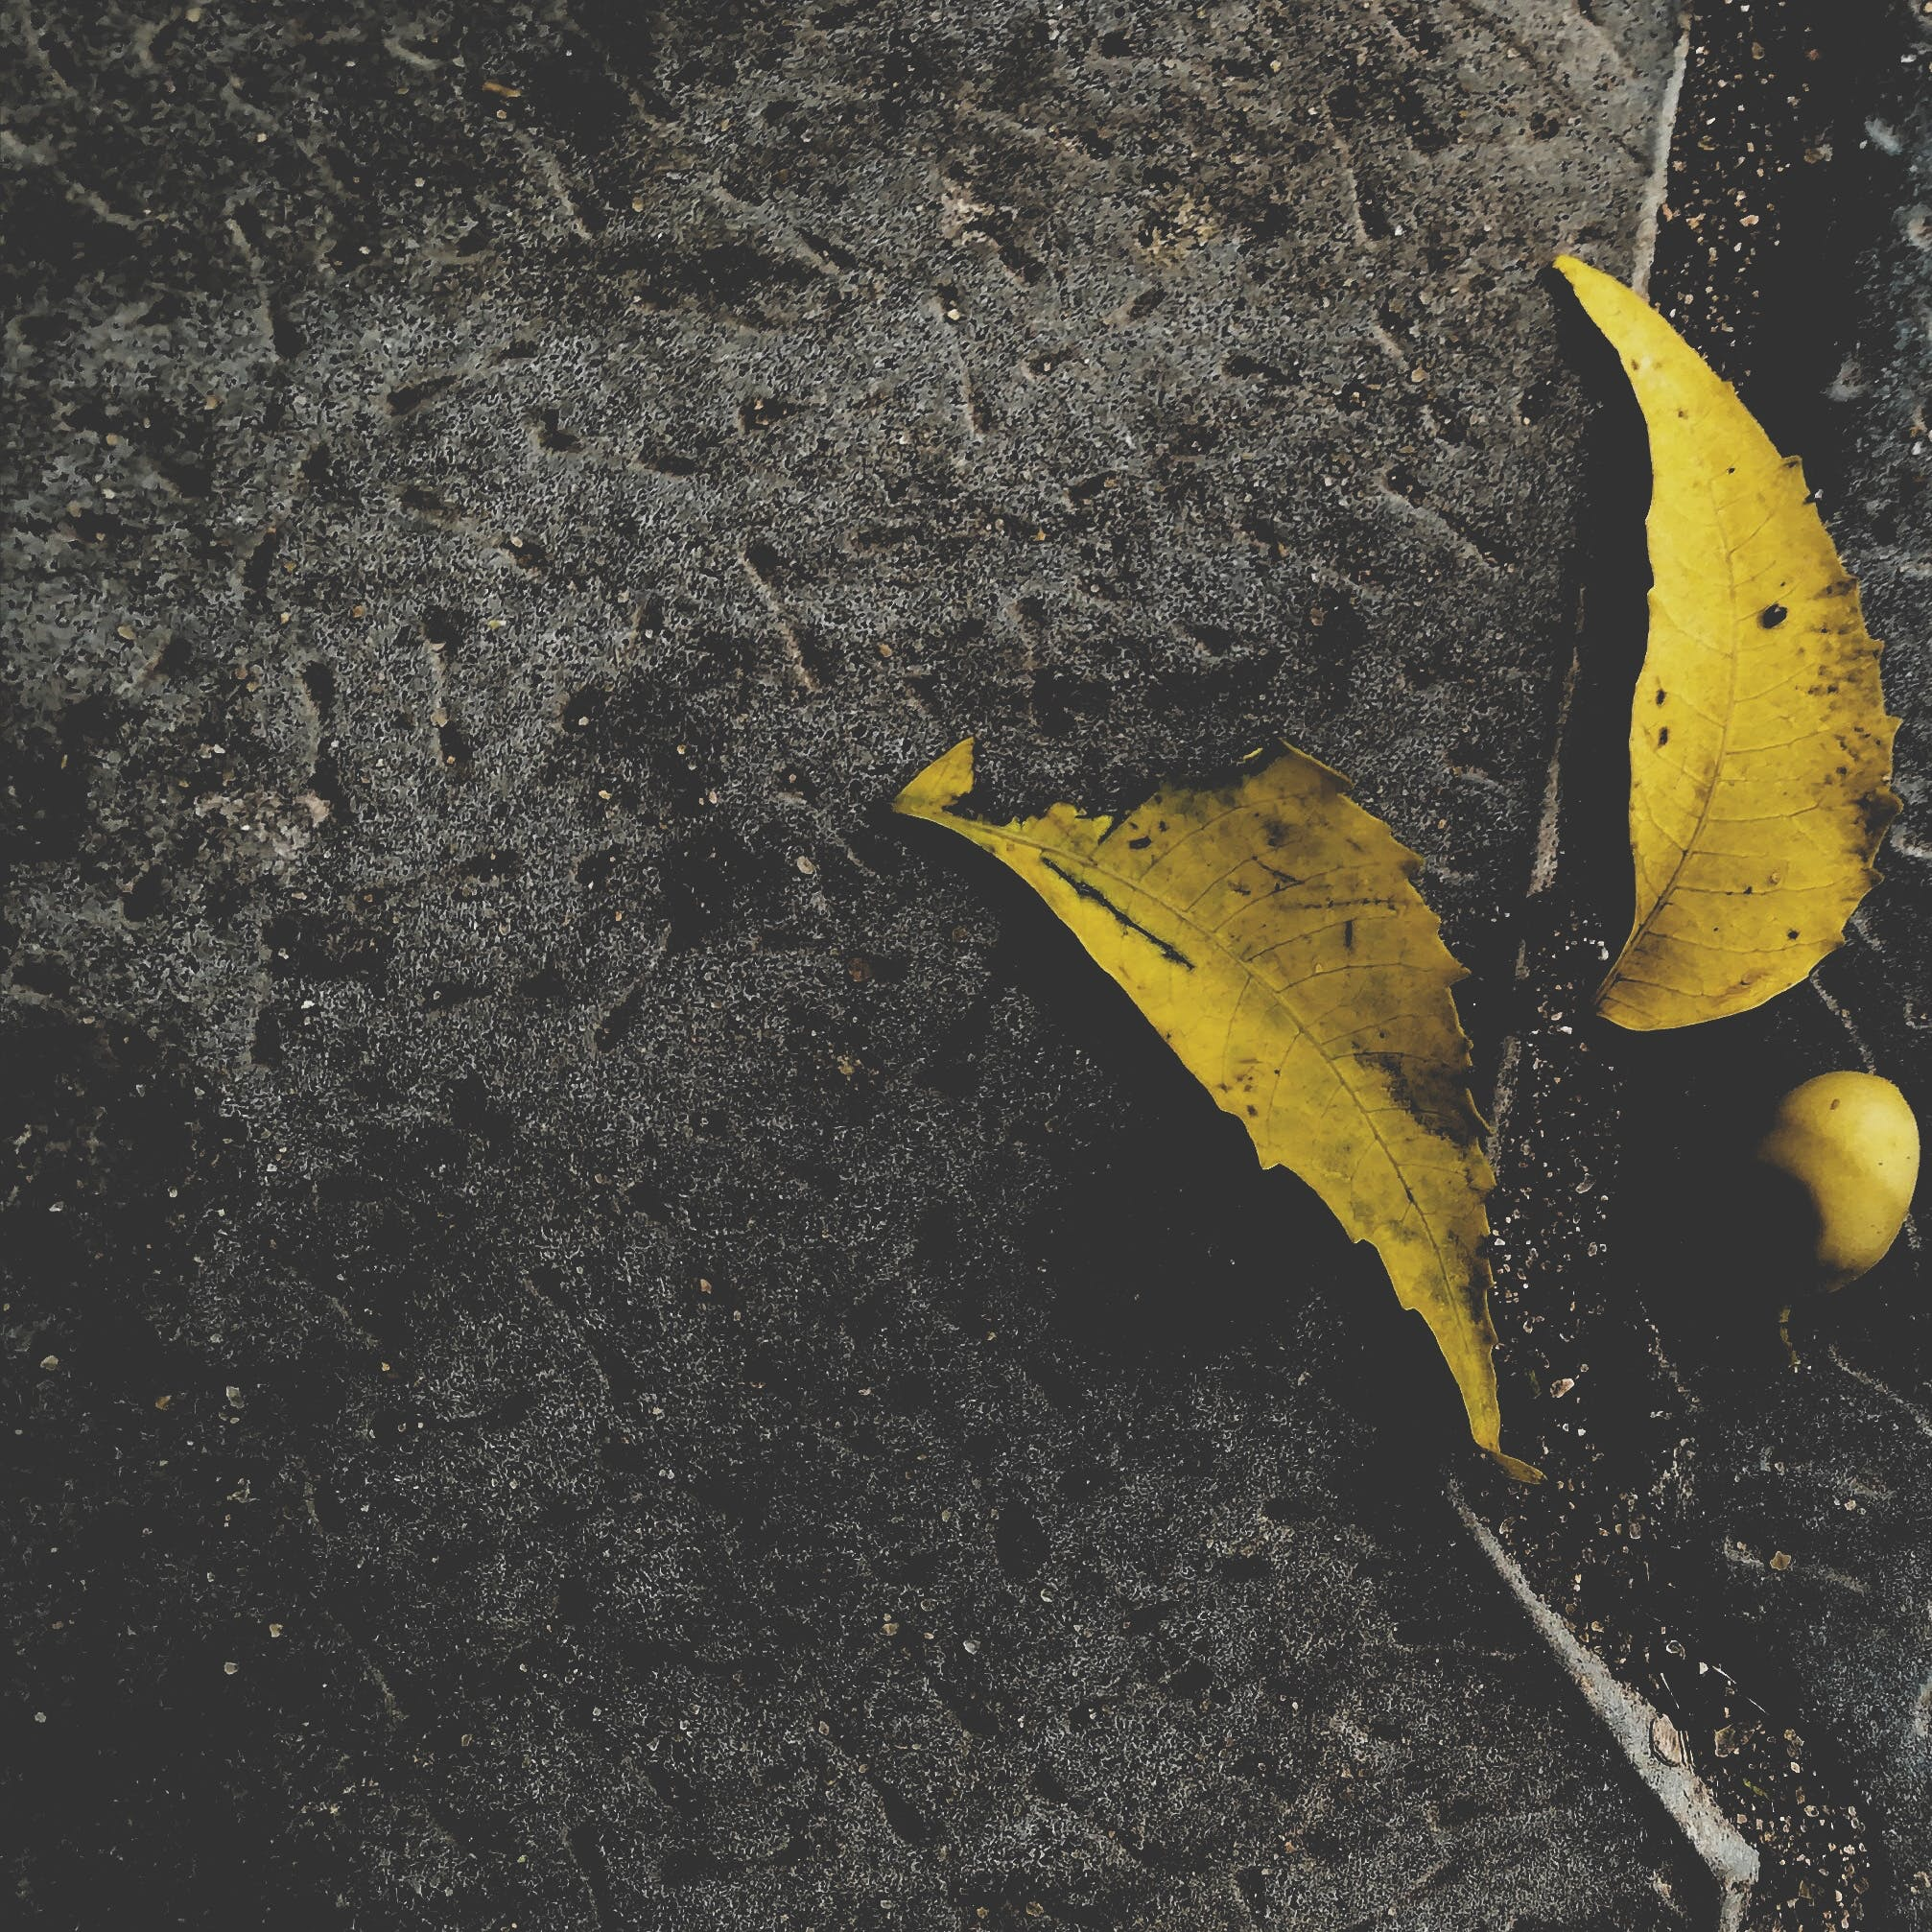 Free stock photo of black background, close up shot, yellow colour